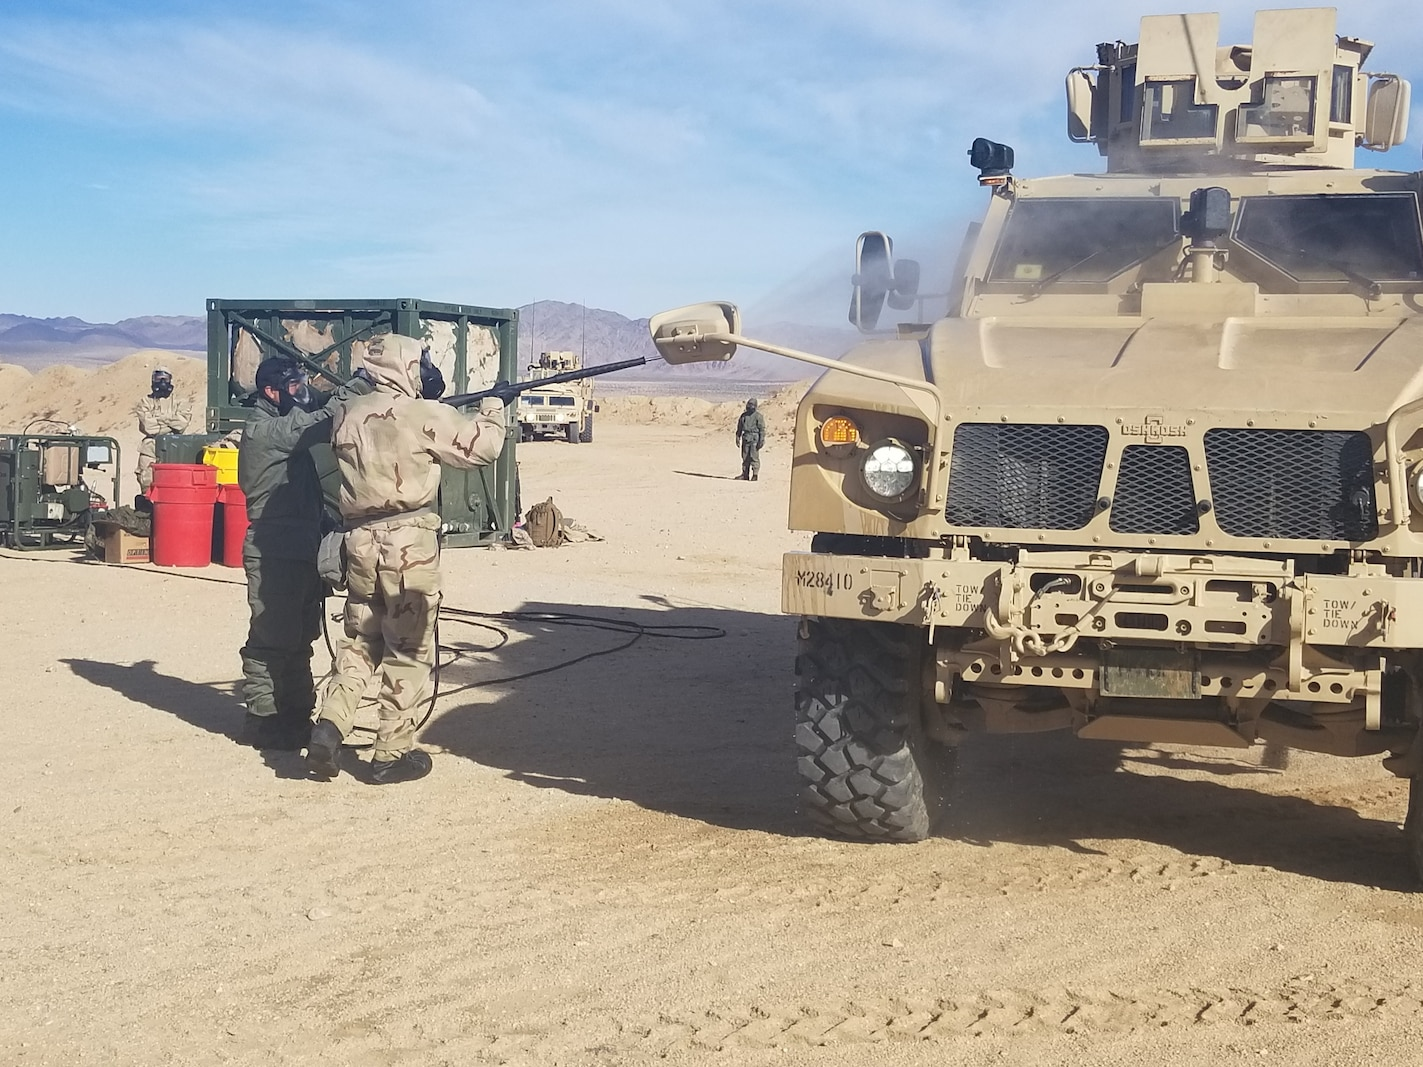 Marines with Headquarters Company, Combat Logistics Regiment 1, conduct a washdown of vehicles after a simulated CBRN attack during Exercise Steel Knight on December 11, 2019.